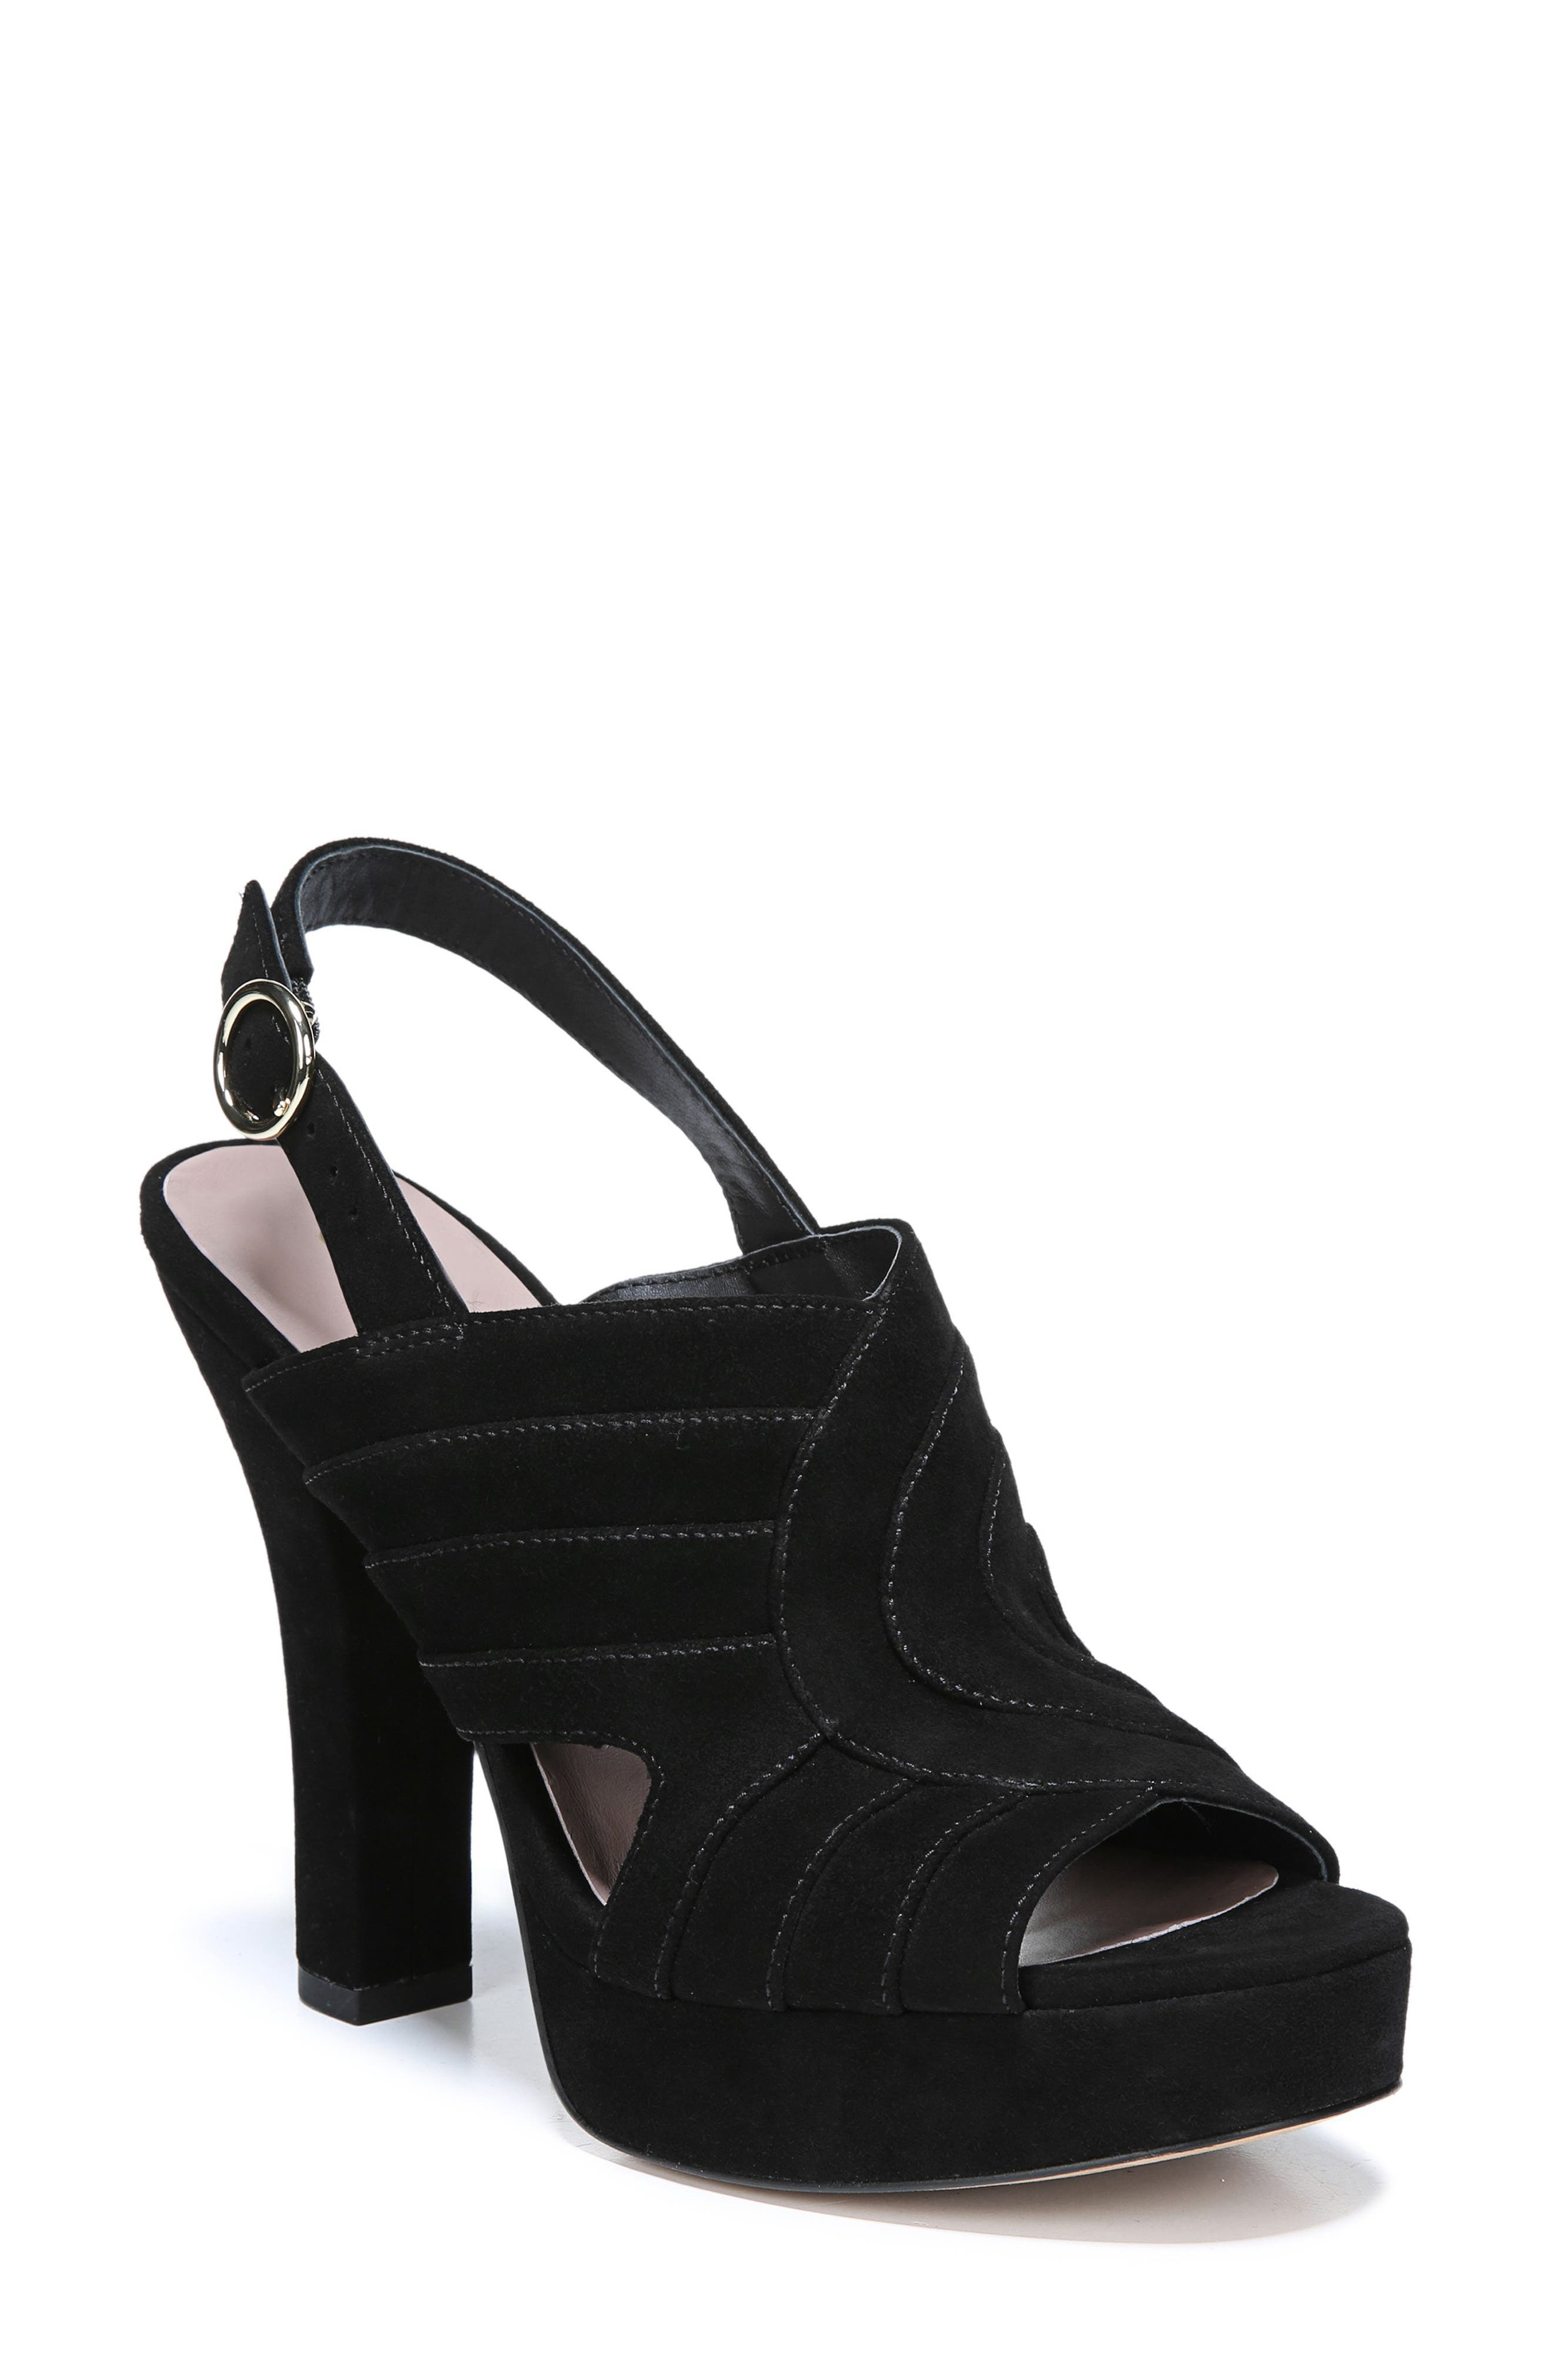 Tabby Platform Sandal,                             Main thumbnail 1, color,                             BLACK